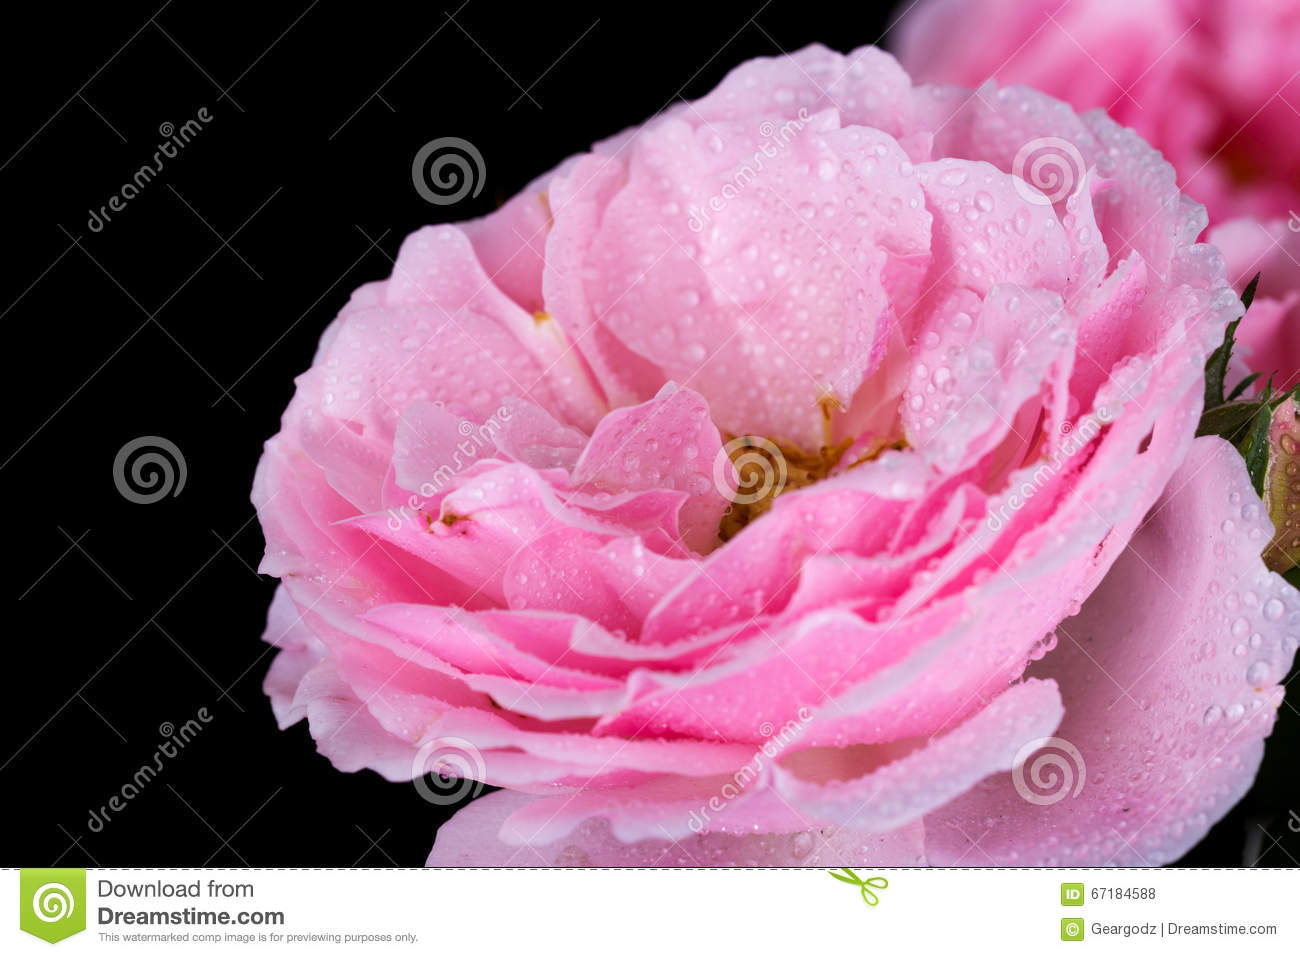 Beautiful pink rose with water drop on black stock photo image of beautiful pink rose with water drop on black background izmirmasajfo